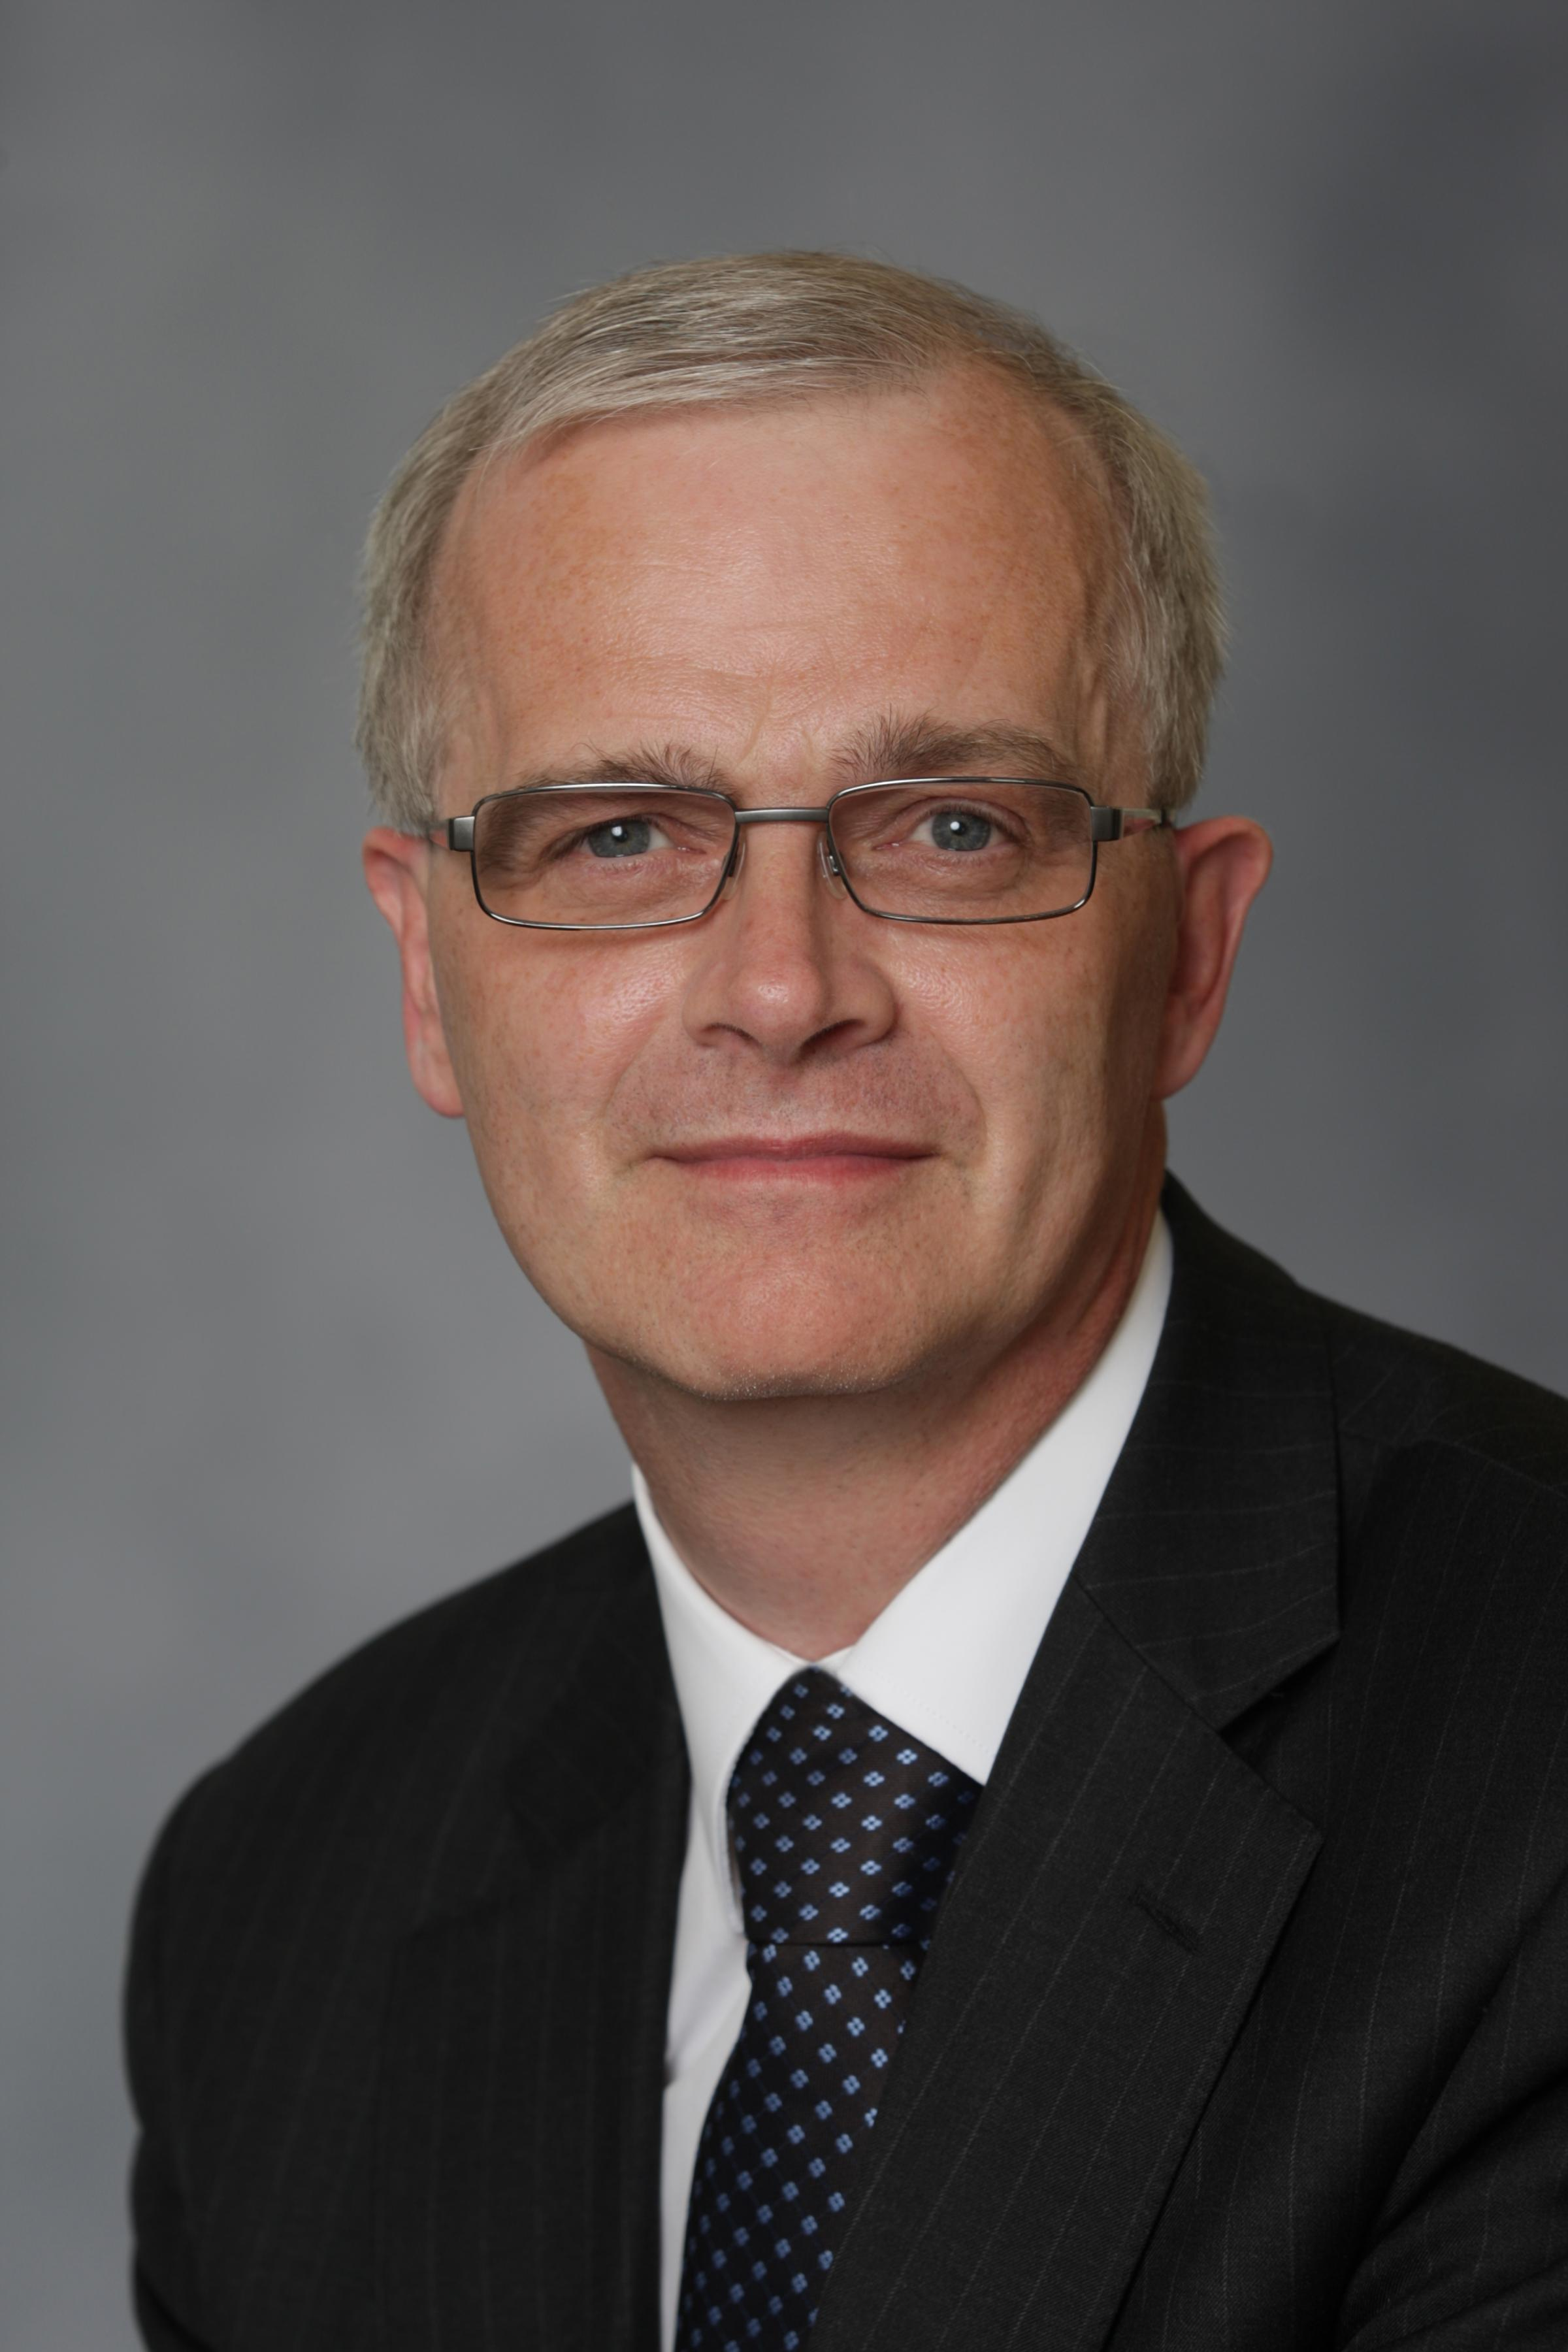 Southampton university has appointed Professor Sir Christopher Snowden.